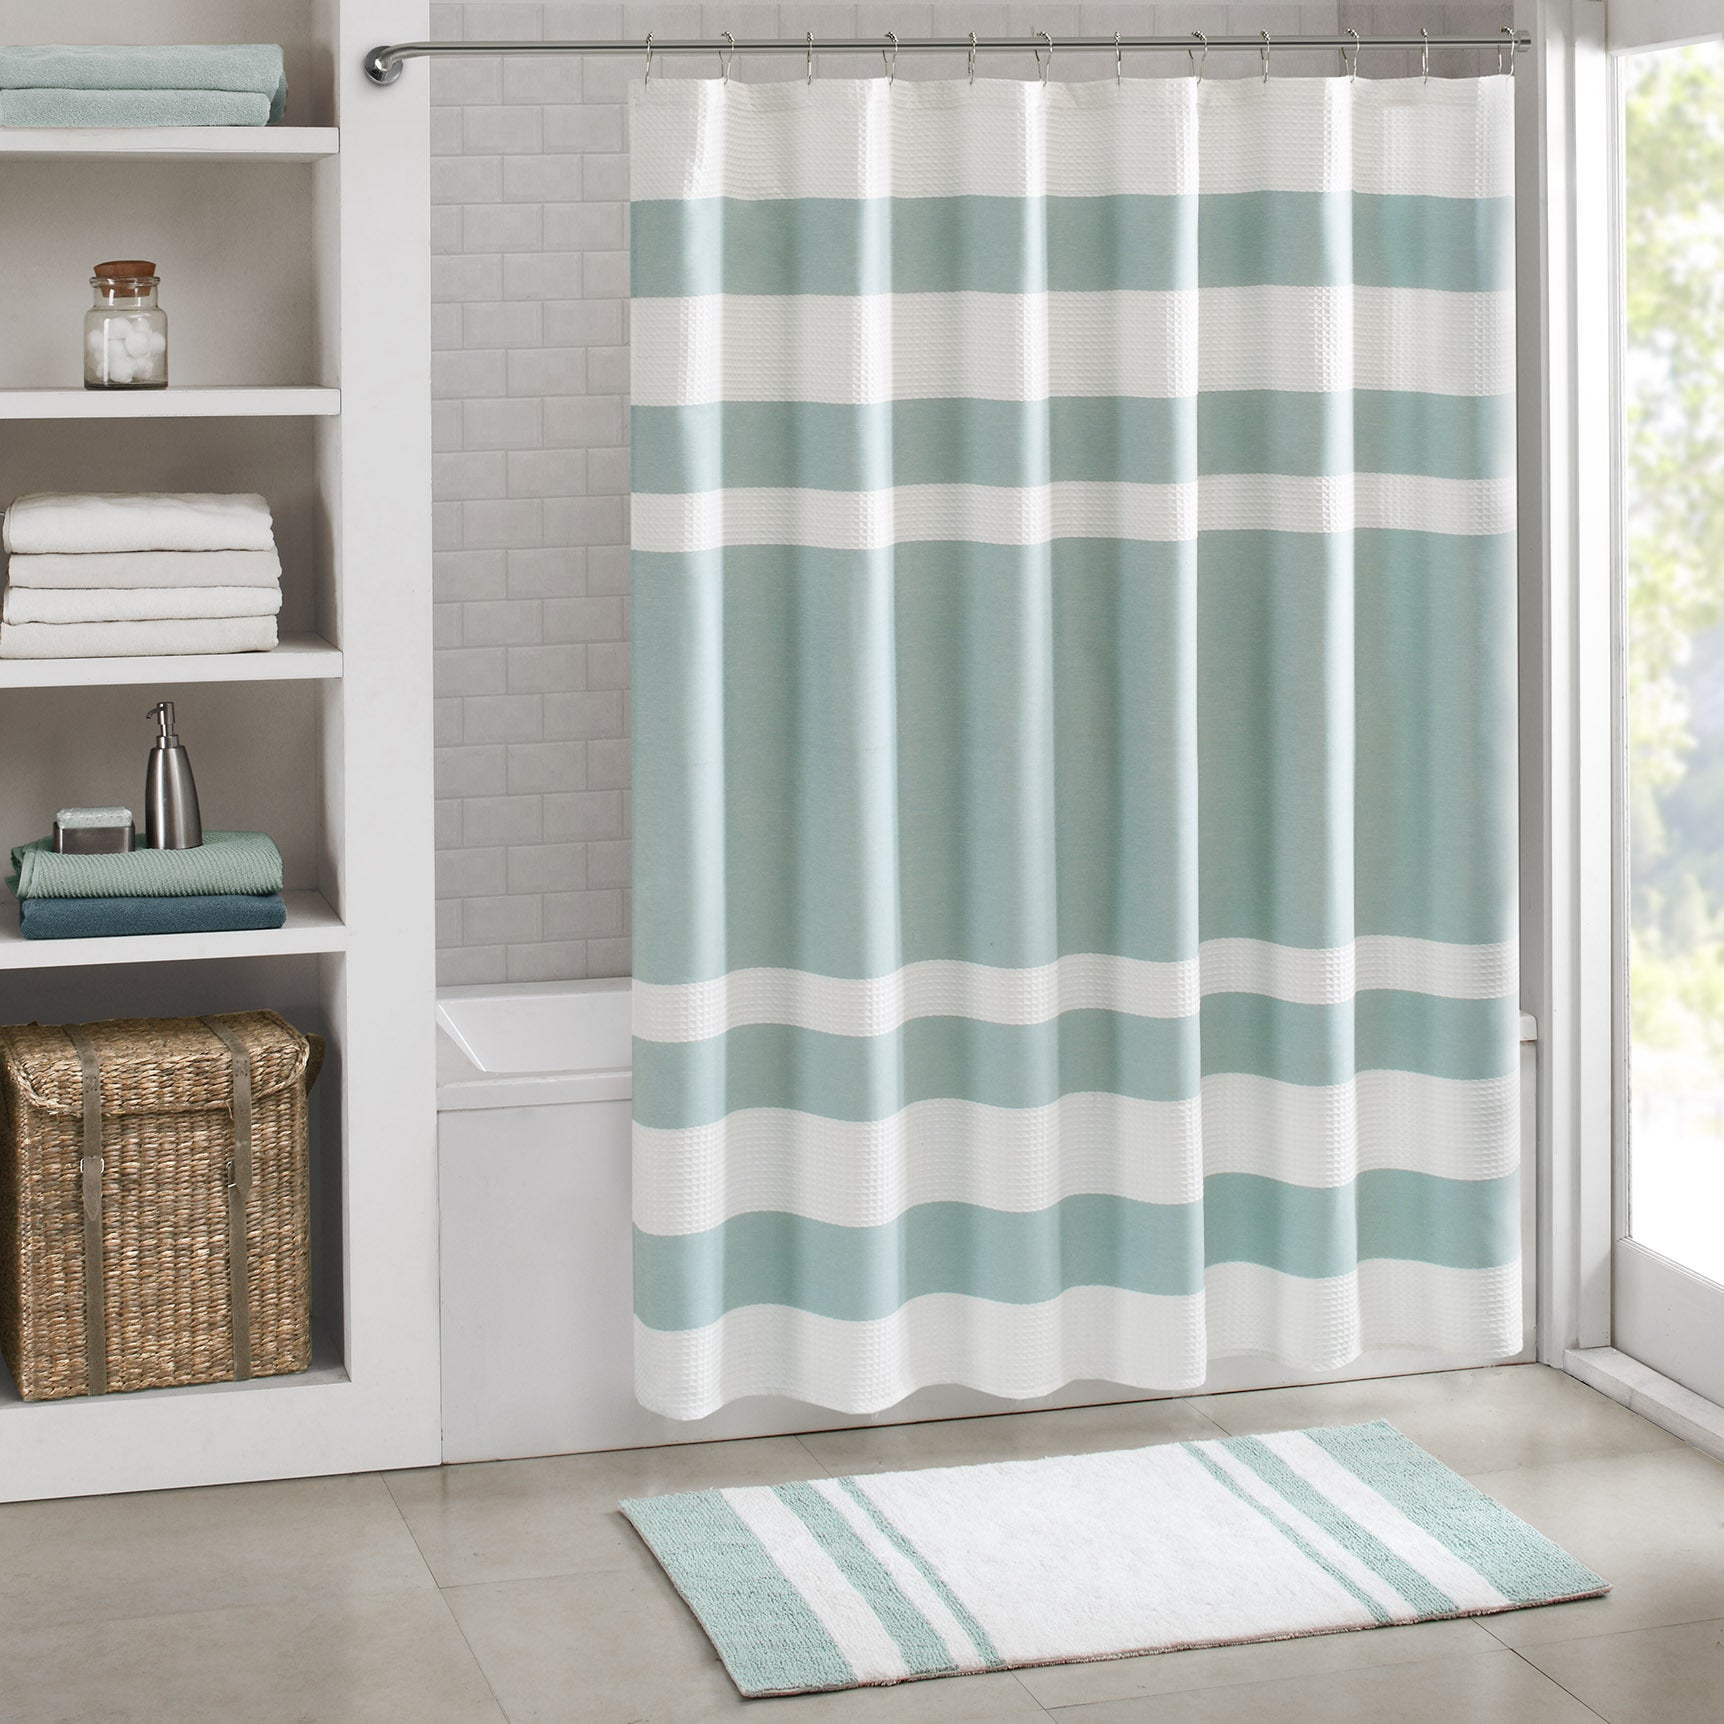 Shop Madison Park Spa Waffle Shower Curtain With 3m Treatment Free